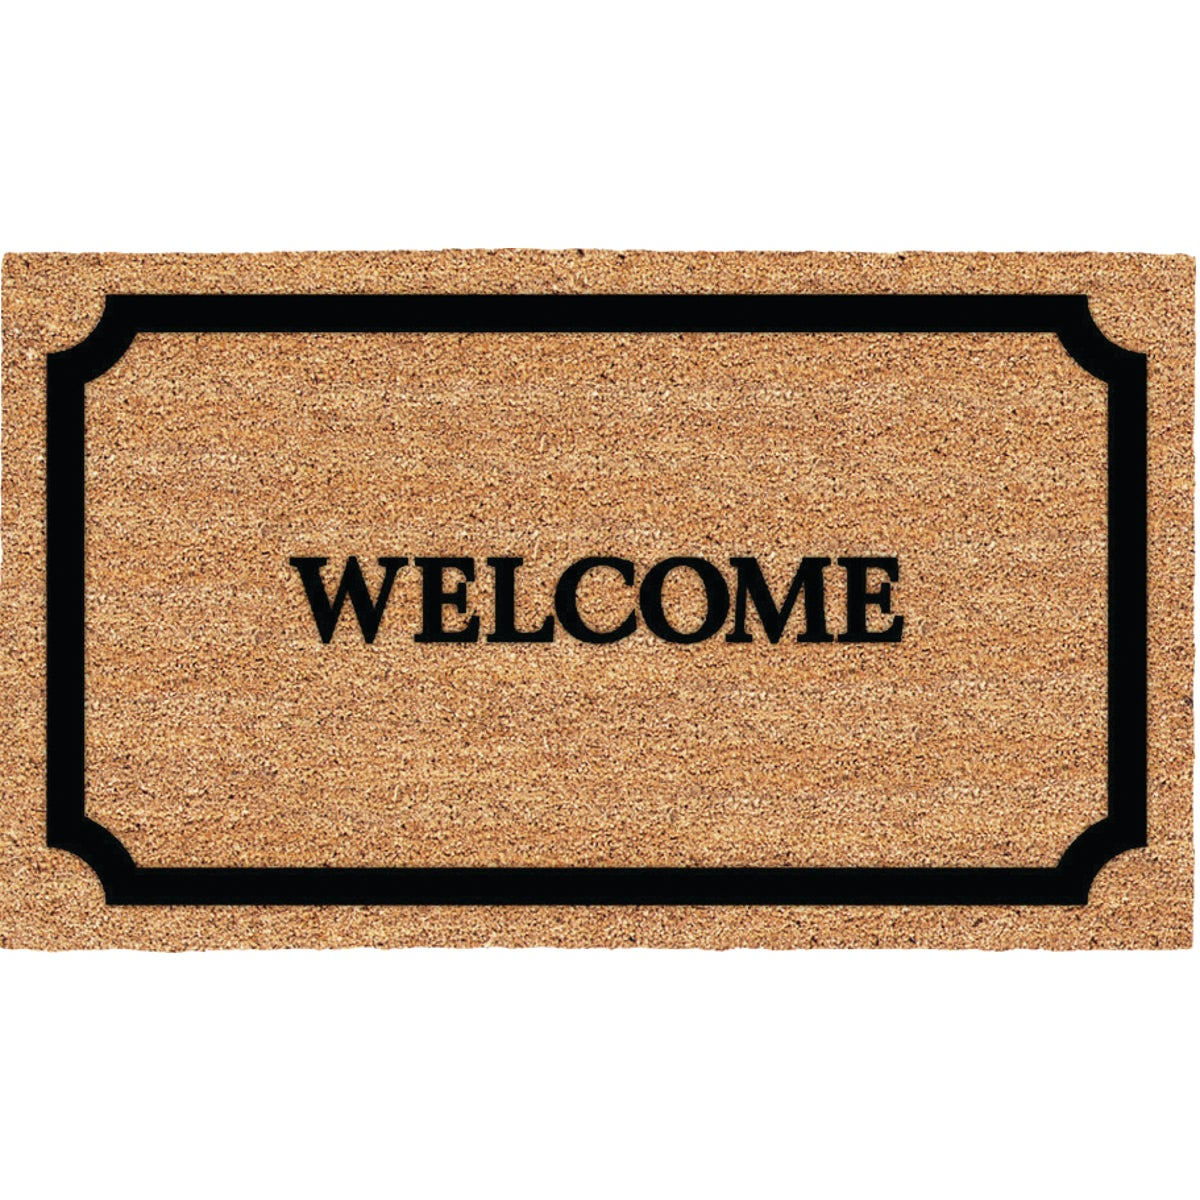 WELCOME BORDER DOORMAT - 31596 by Uscoa Llc